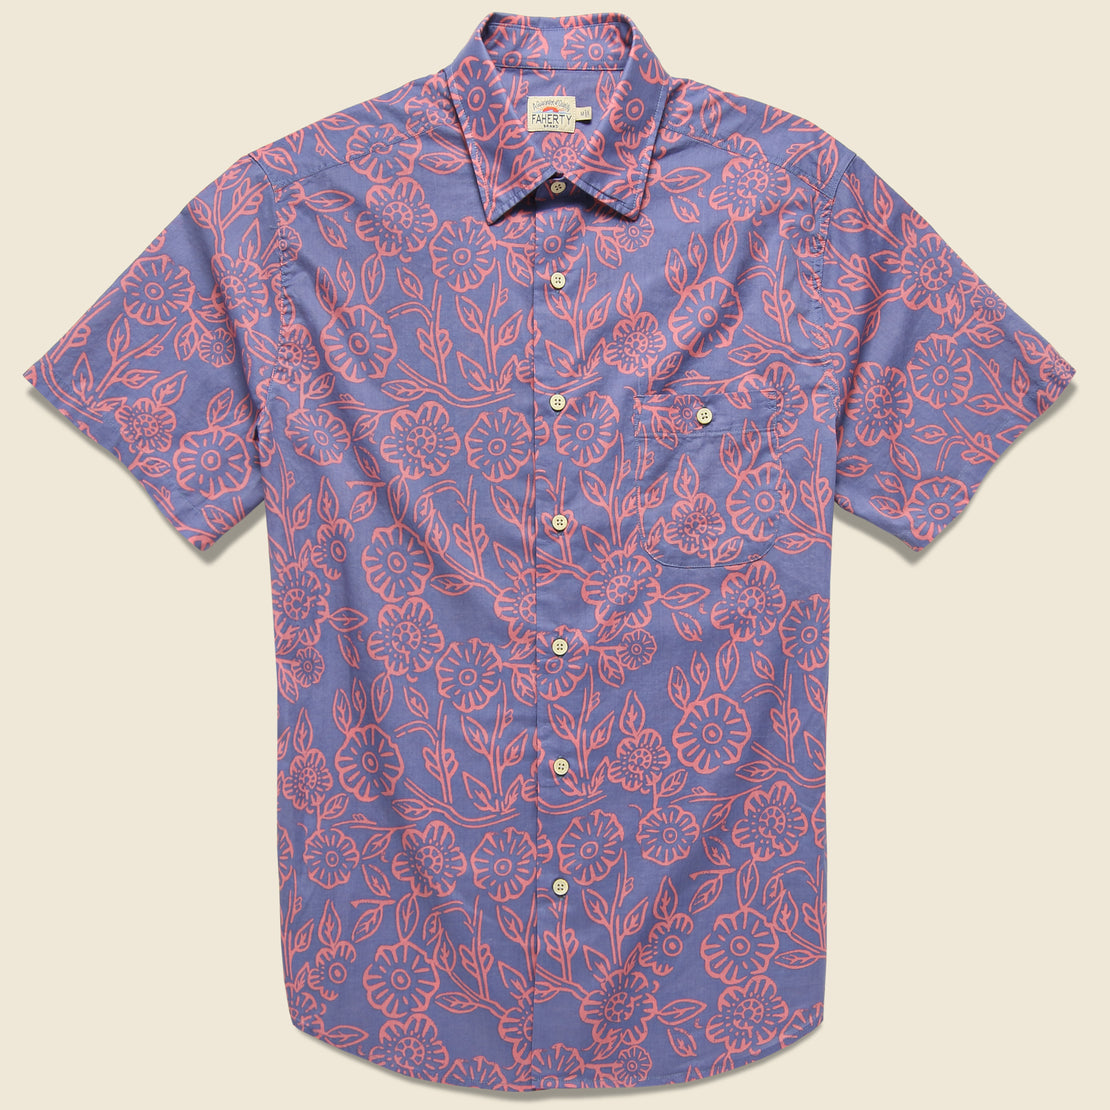 Faherty Reverse Print Coast Shirt - Pink Poppy